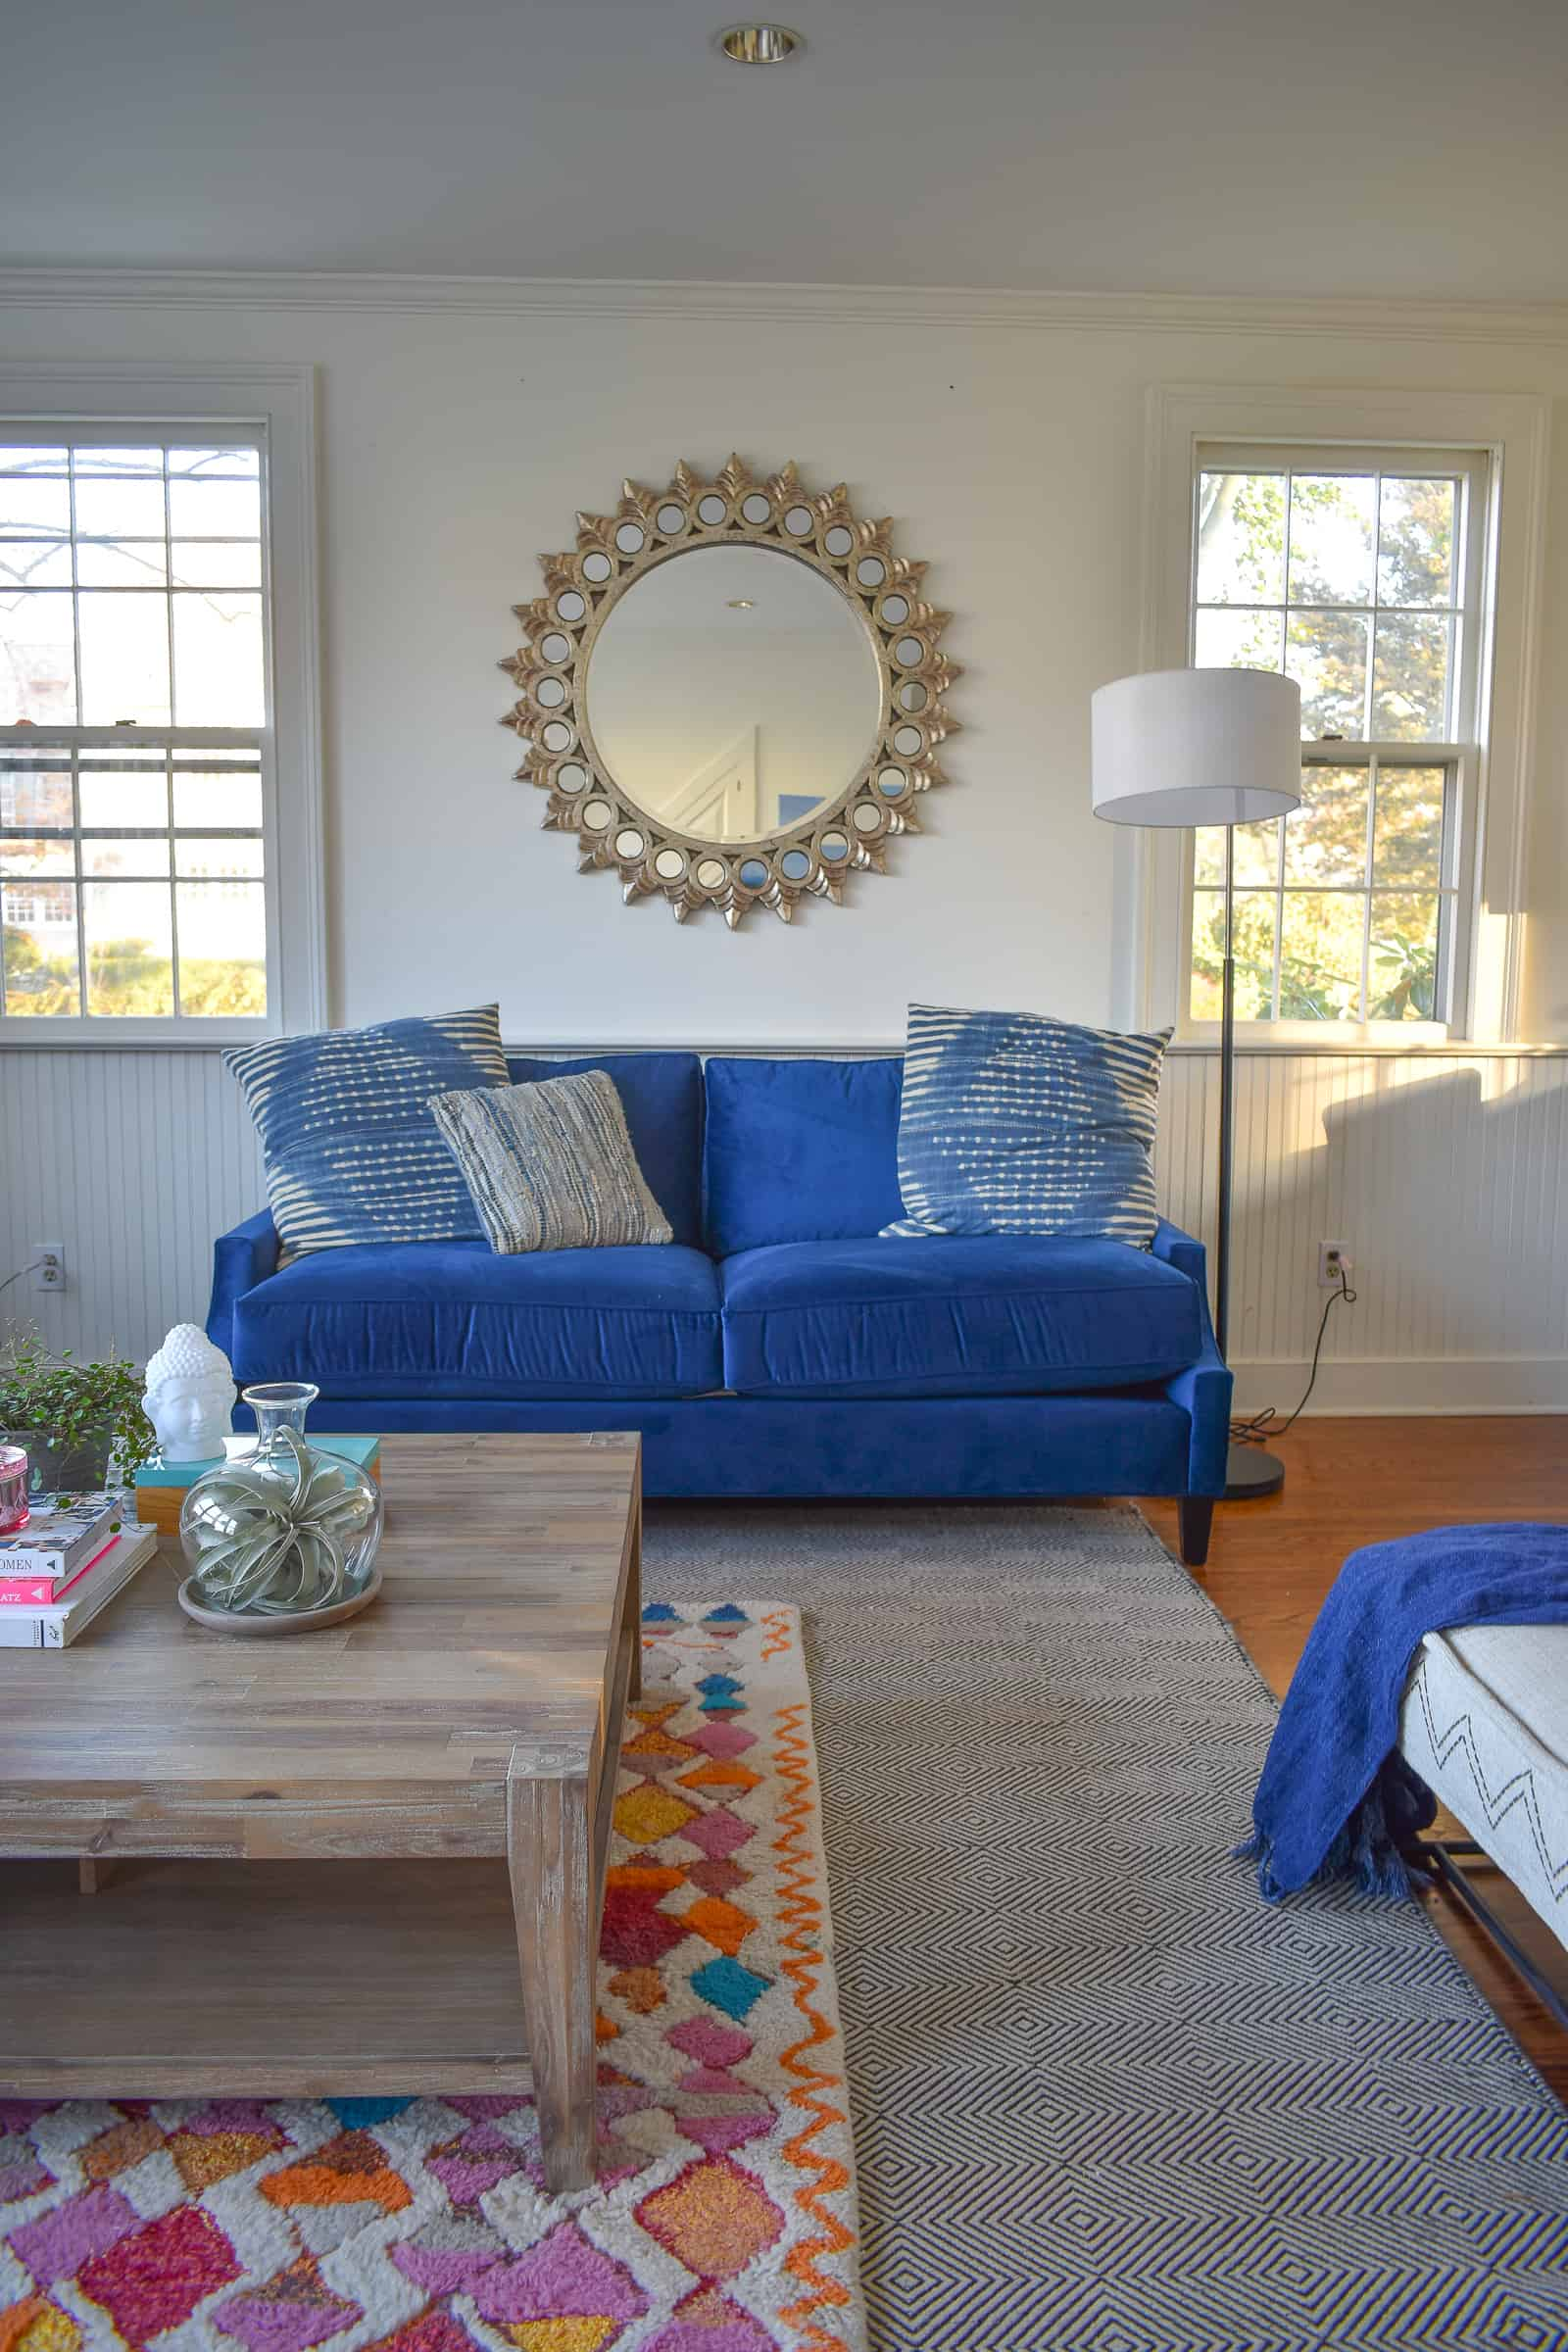 round mirror in family room